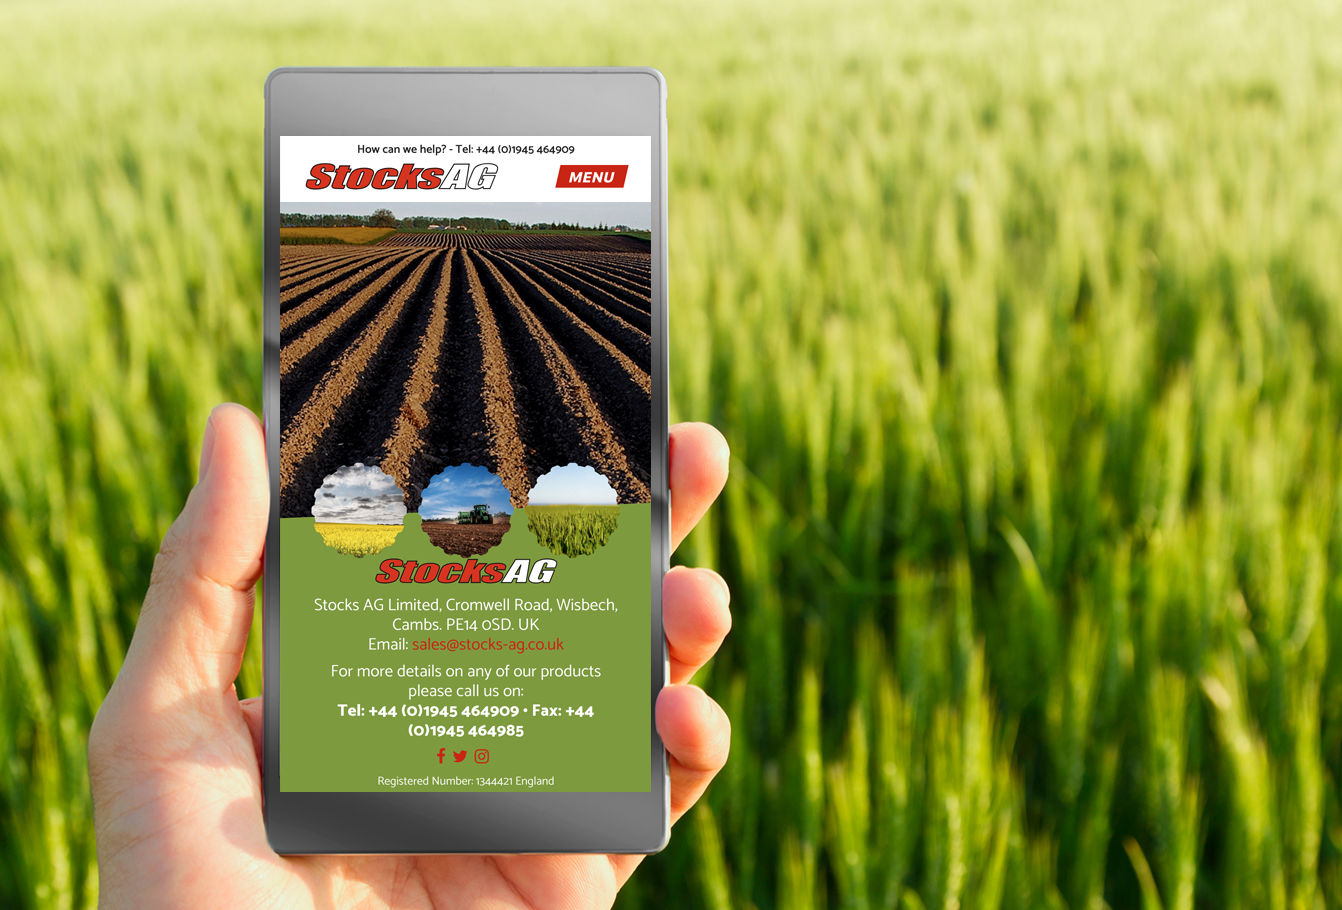 Stocks AG website on mobile